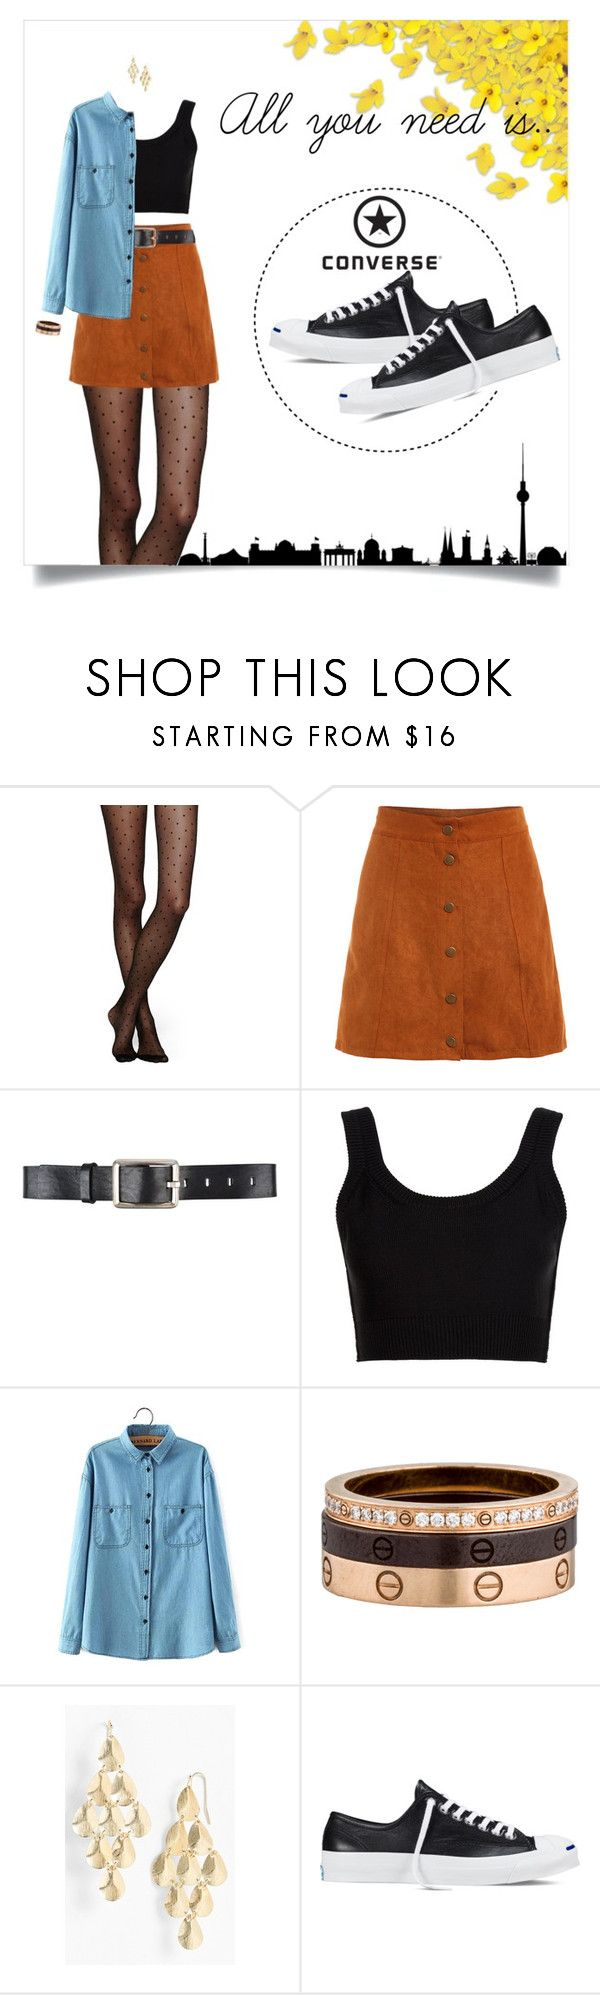 """All you need is.."" by priscilla14ster on Polyvore featuring moda, Converse, Kate Spade, Belstaff, Calvin Klein Collection, Cartier, Nordstrom, converse e ootd"